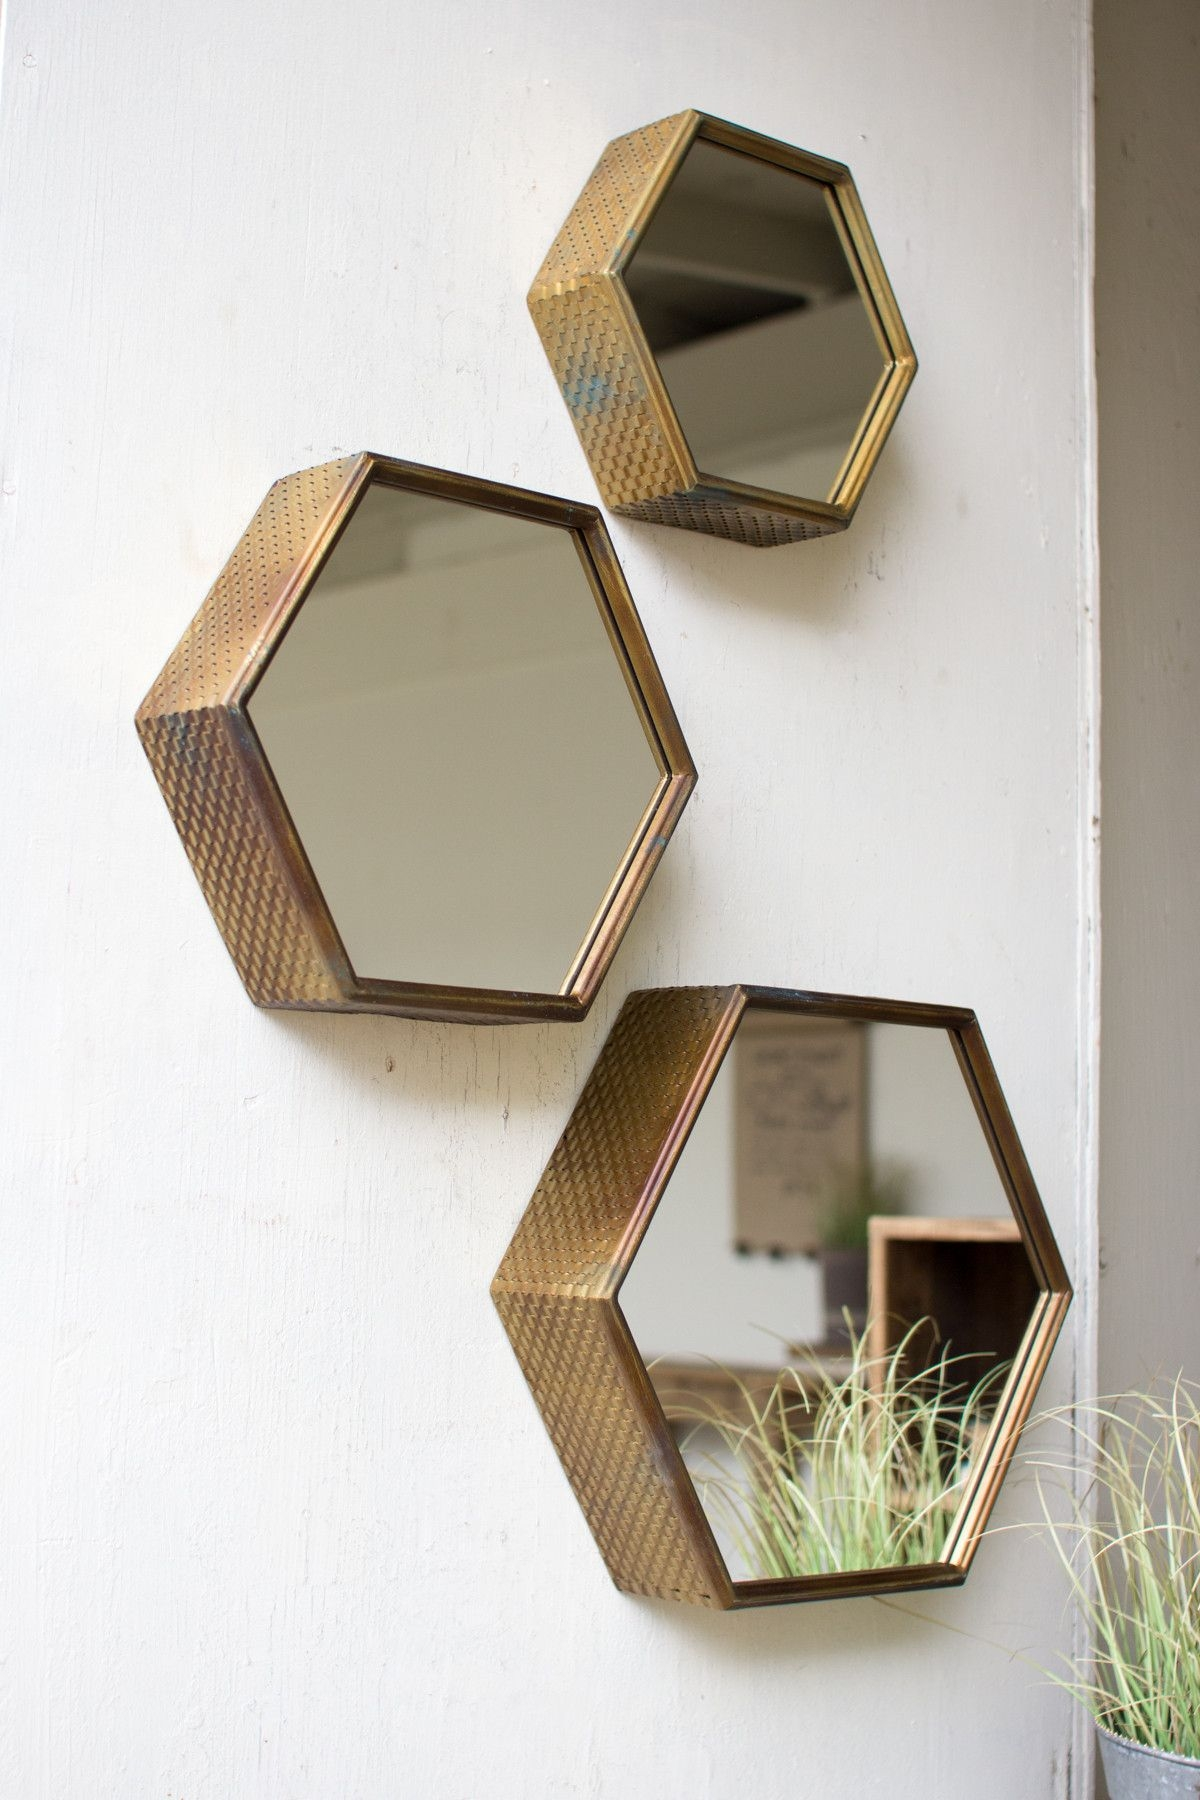 Antique Finished Hexagon Mirrors Set Of 3 Hexagons Large And With Regard To Antique Small Mirrors (Image 1 of 15)